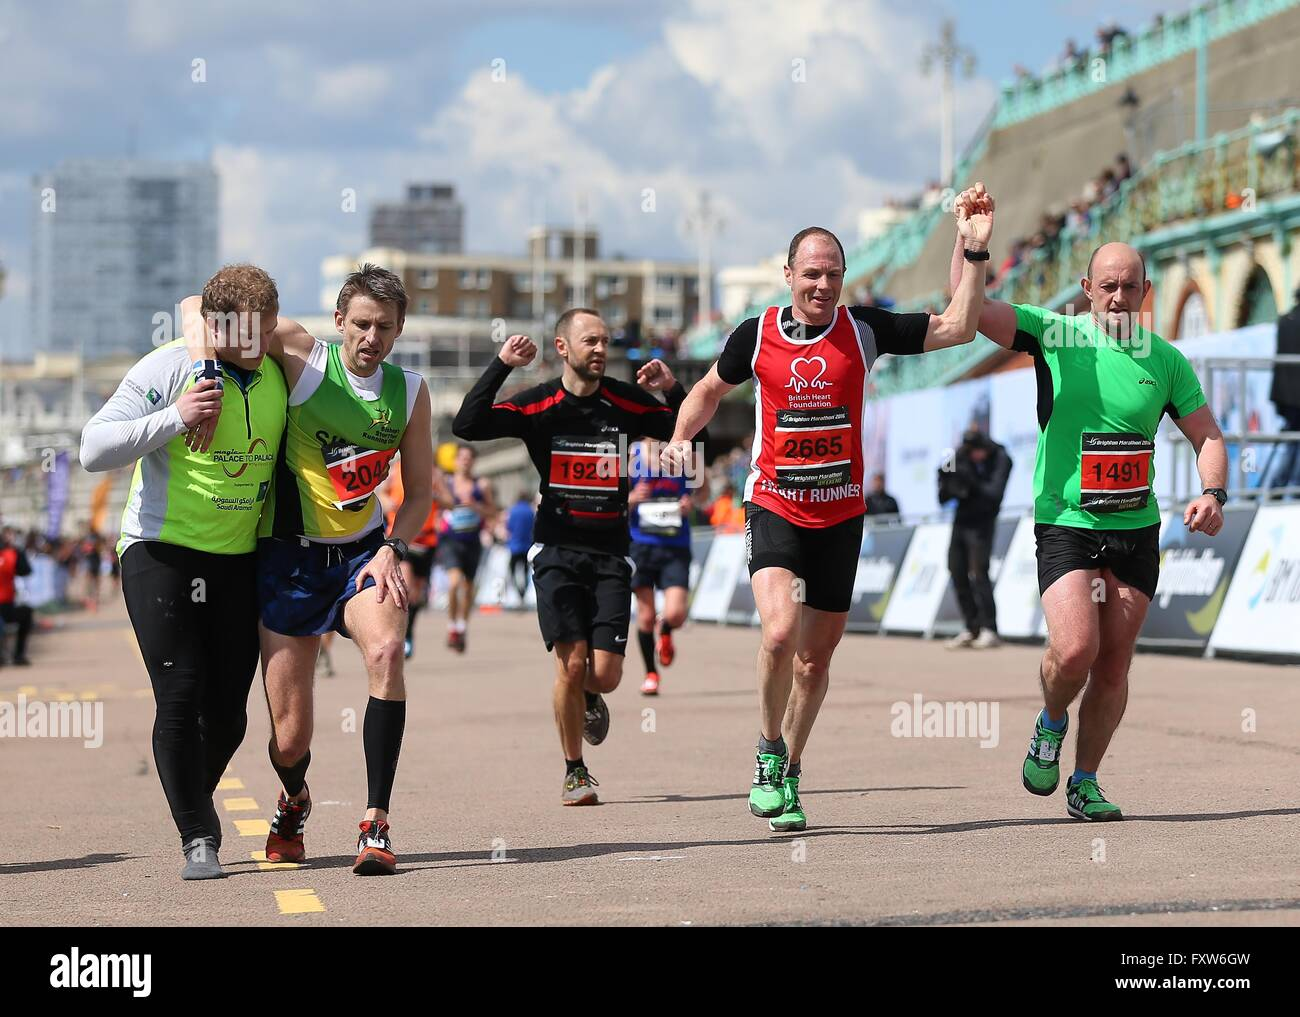 Runner Across Finish Line Wiring Diagrams 5v Load Cell Amp Using Ina125p Autodesk Circuits A Is Helped The During 2016 Brighton Rh Alamy Com Olympic Dives